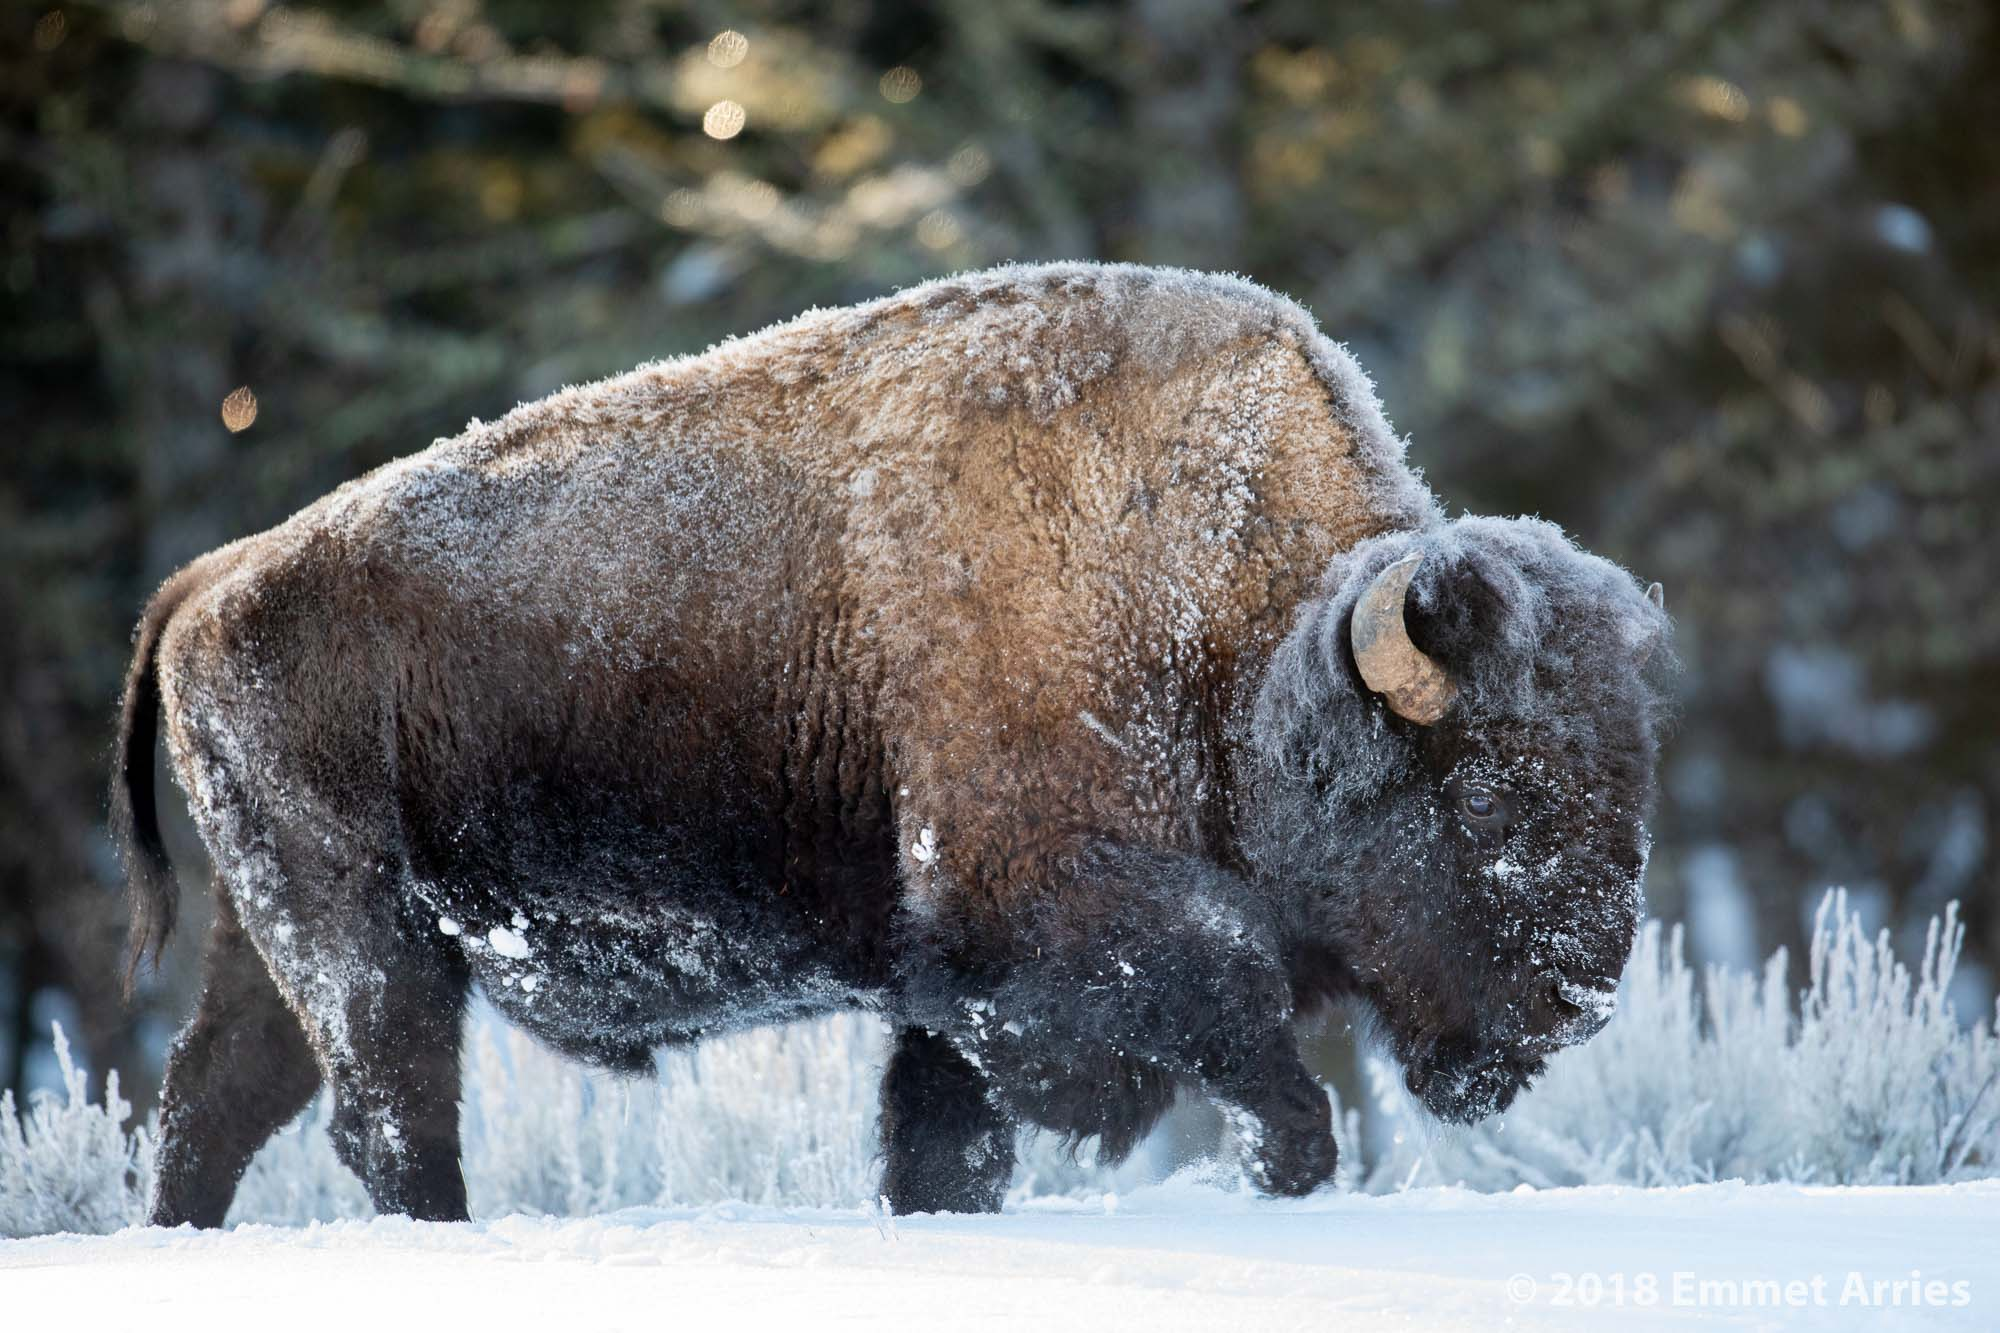 On an early morning excursion, we found this frosty Bull Bison pushing aside snow with his big head for a chance at the grasses underneath. After about an hour, he revealed his full majesty to us as he moved off.